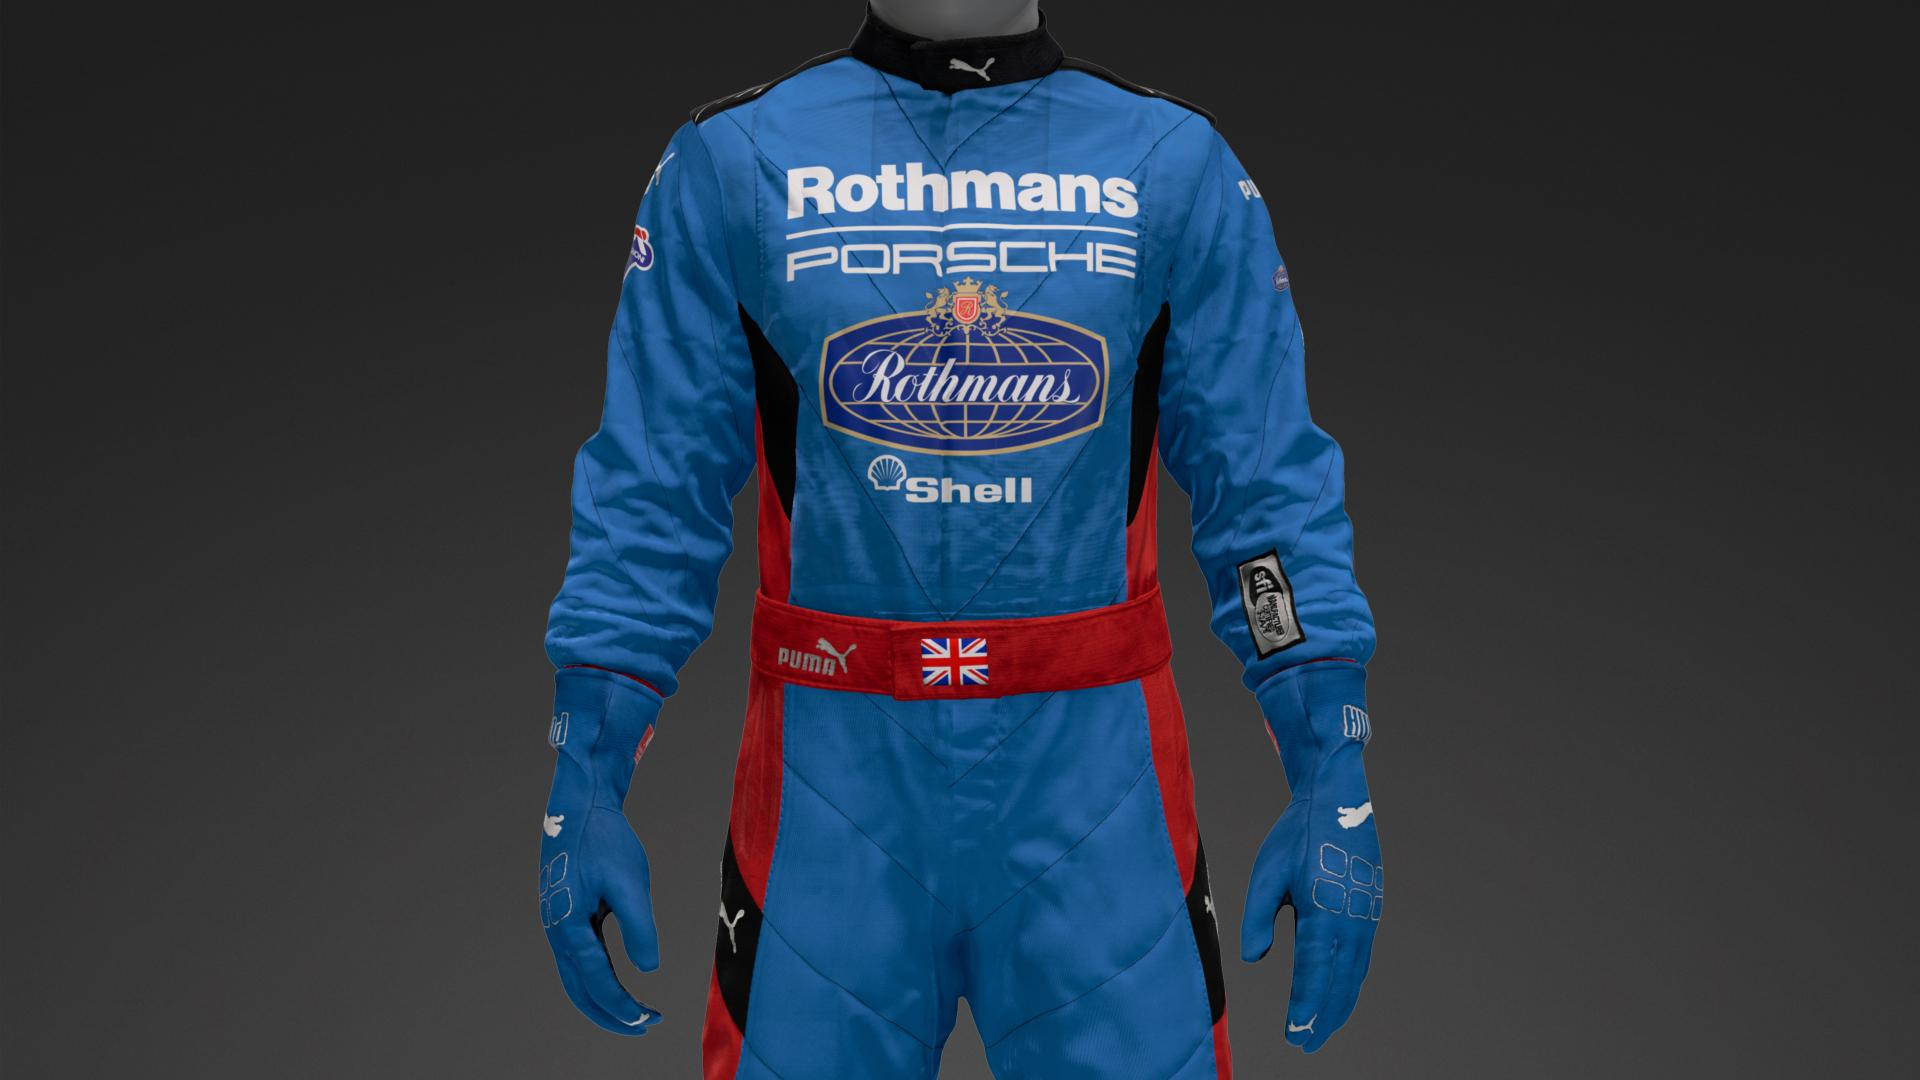 Rothmans 8 Suit Livery By Insert Coin 08 Community